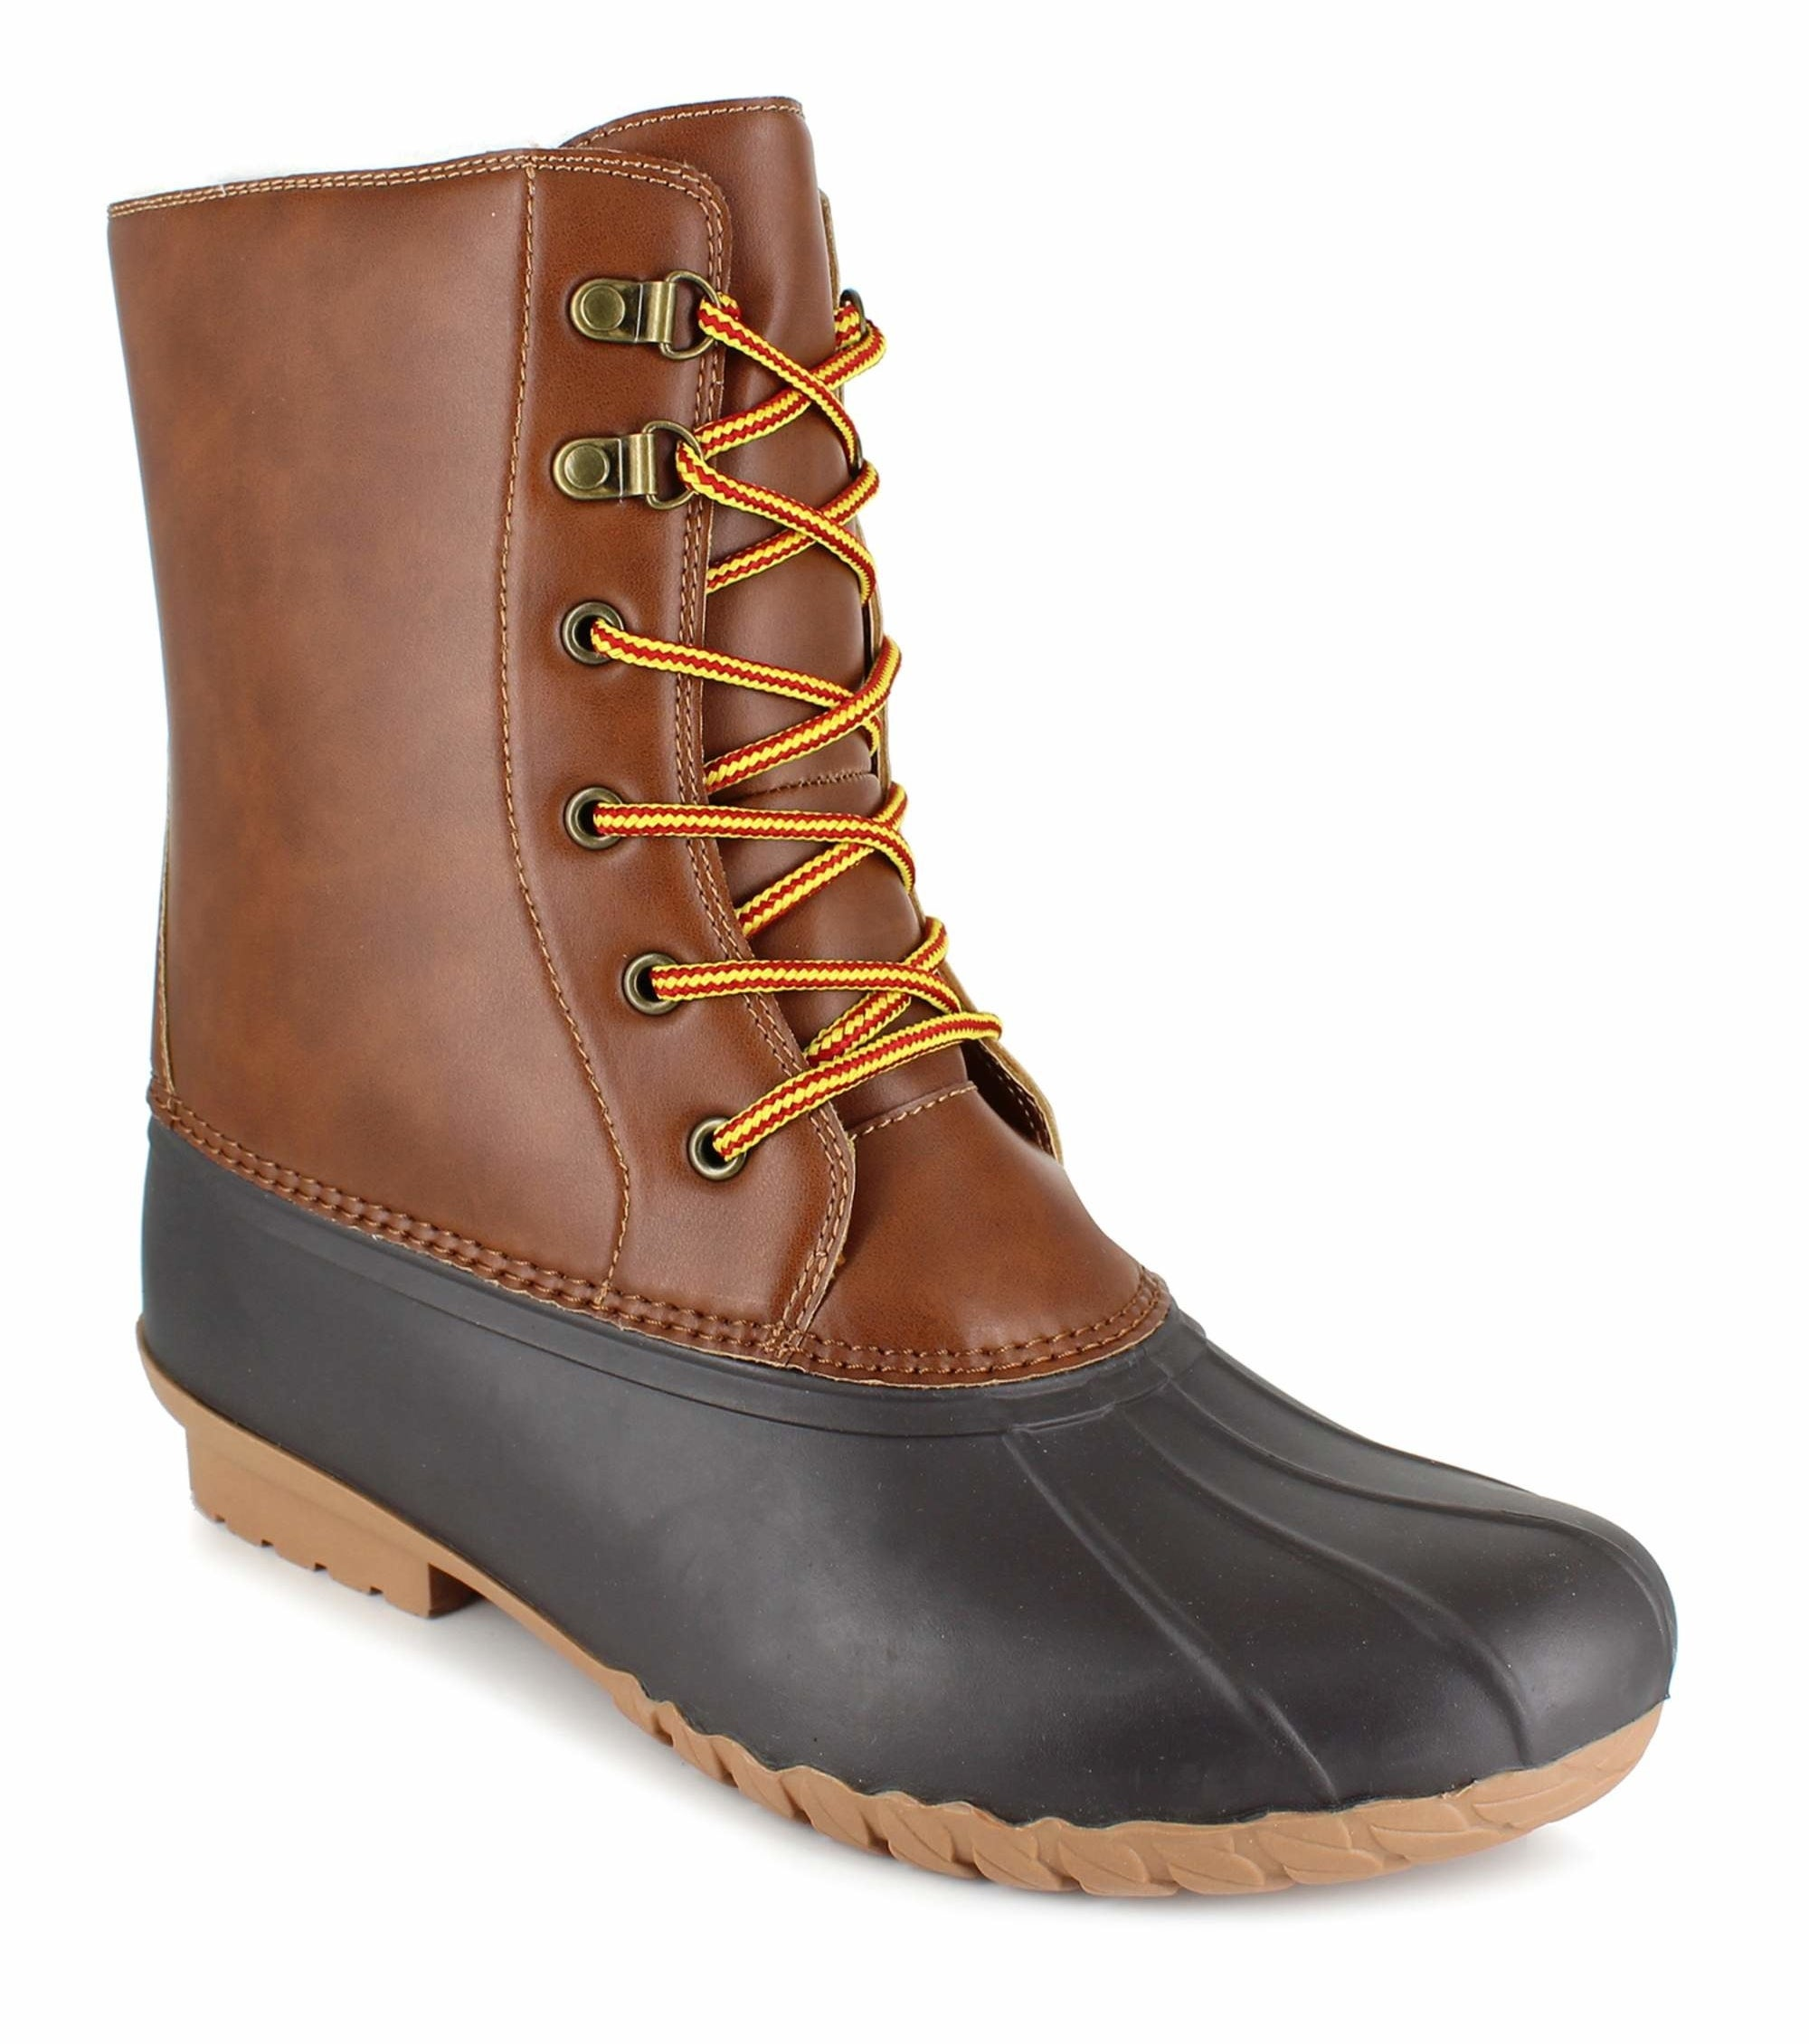 duck boot laced up